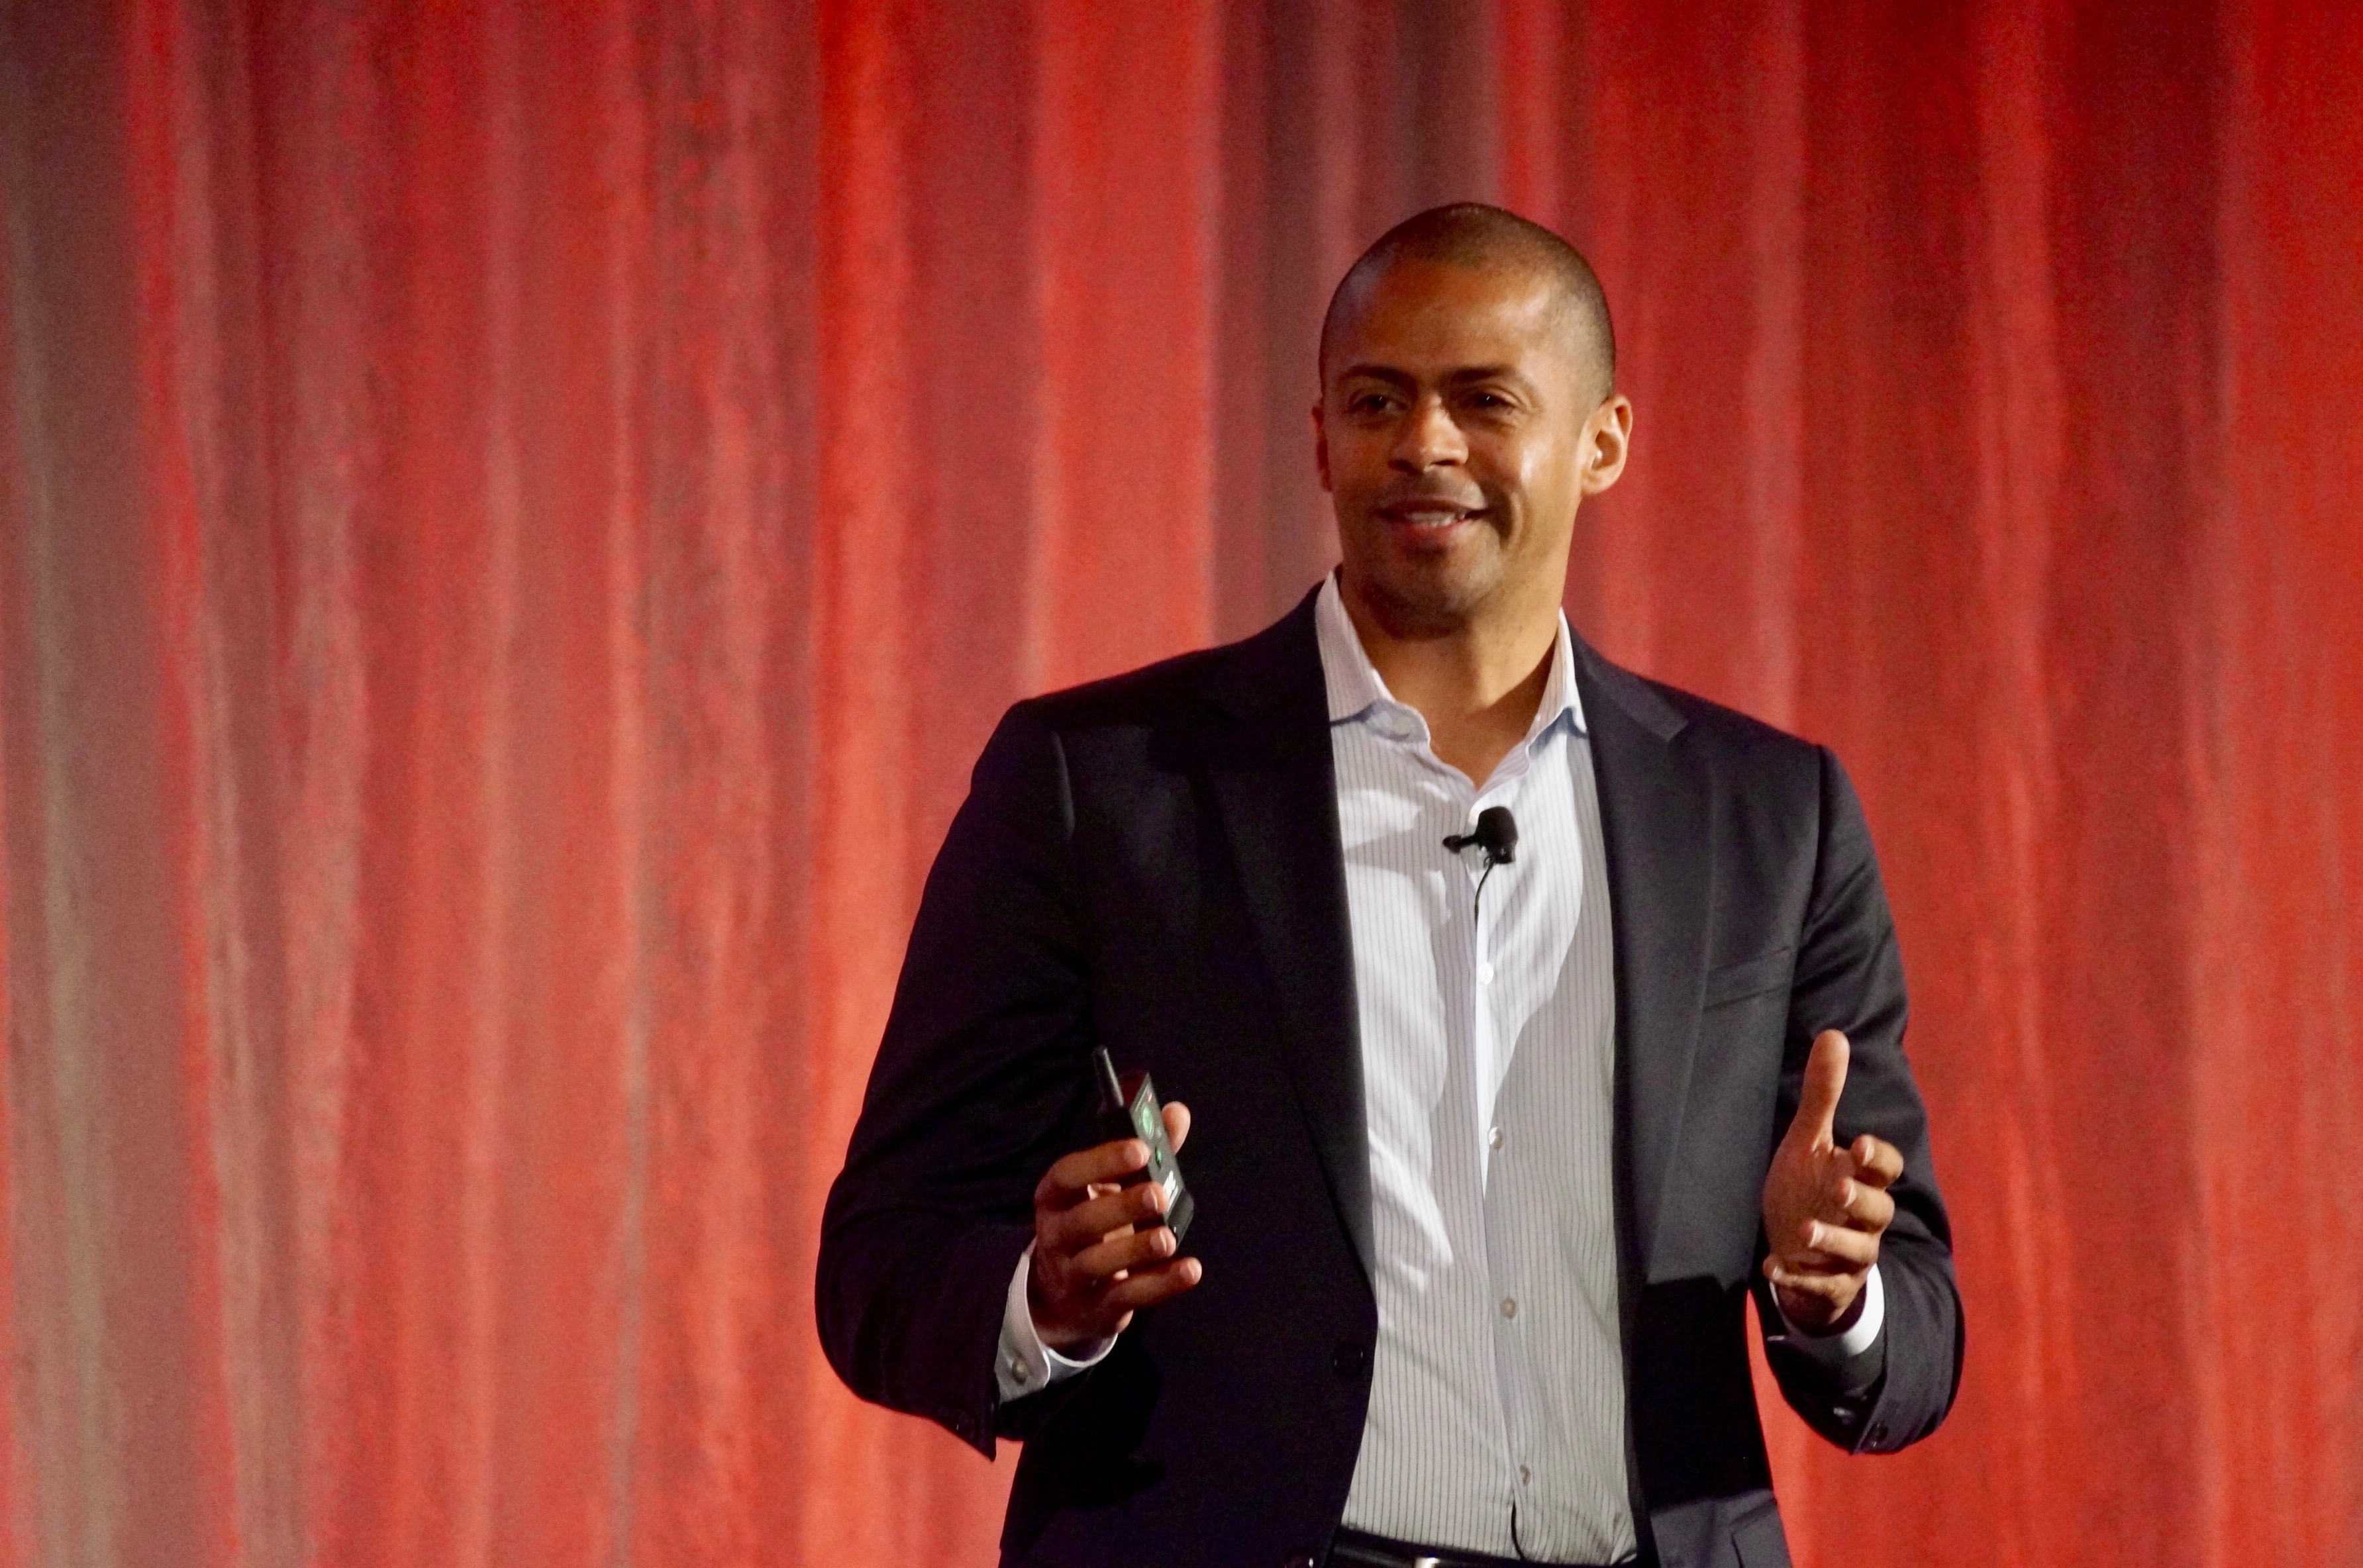 F5 Networks agrees to acquire Volterra, which offers a platform for edge computing across multiple clouds, for $440M in cash and $60M in future consideration (Todd Bishop/GeekWire)